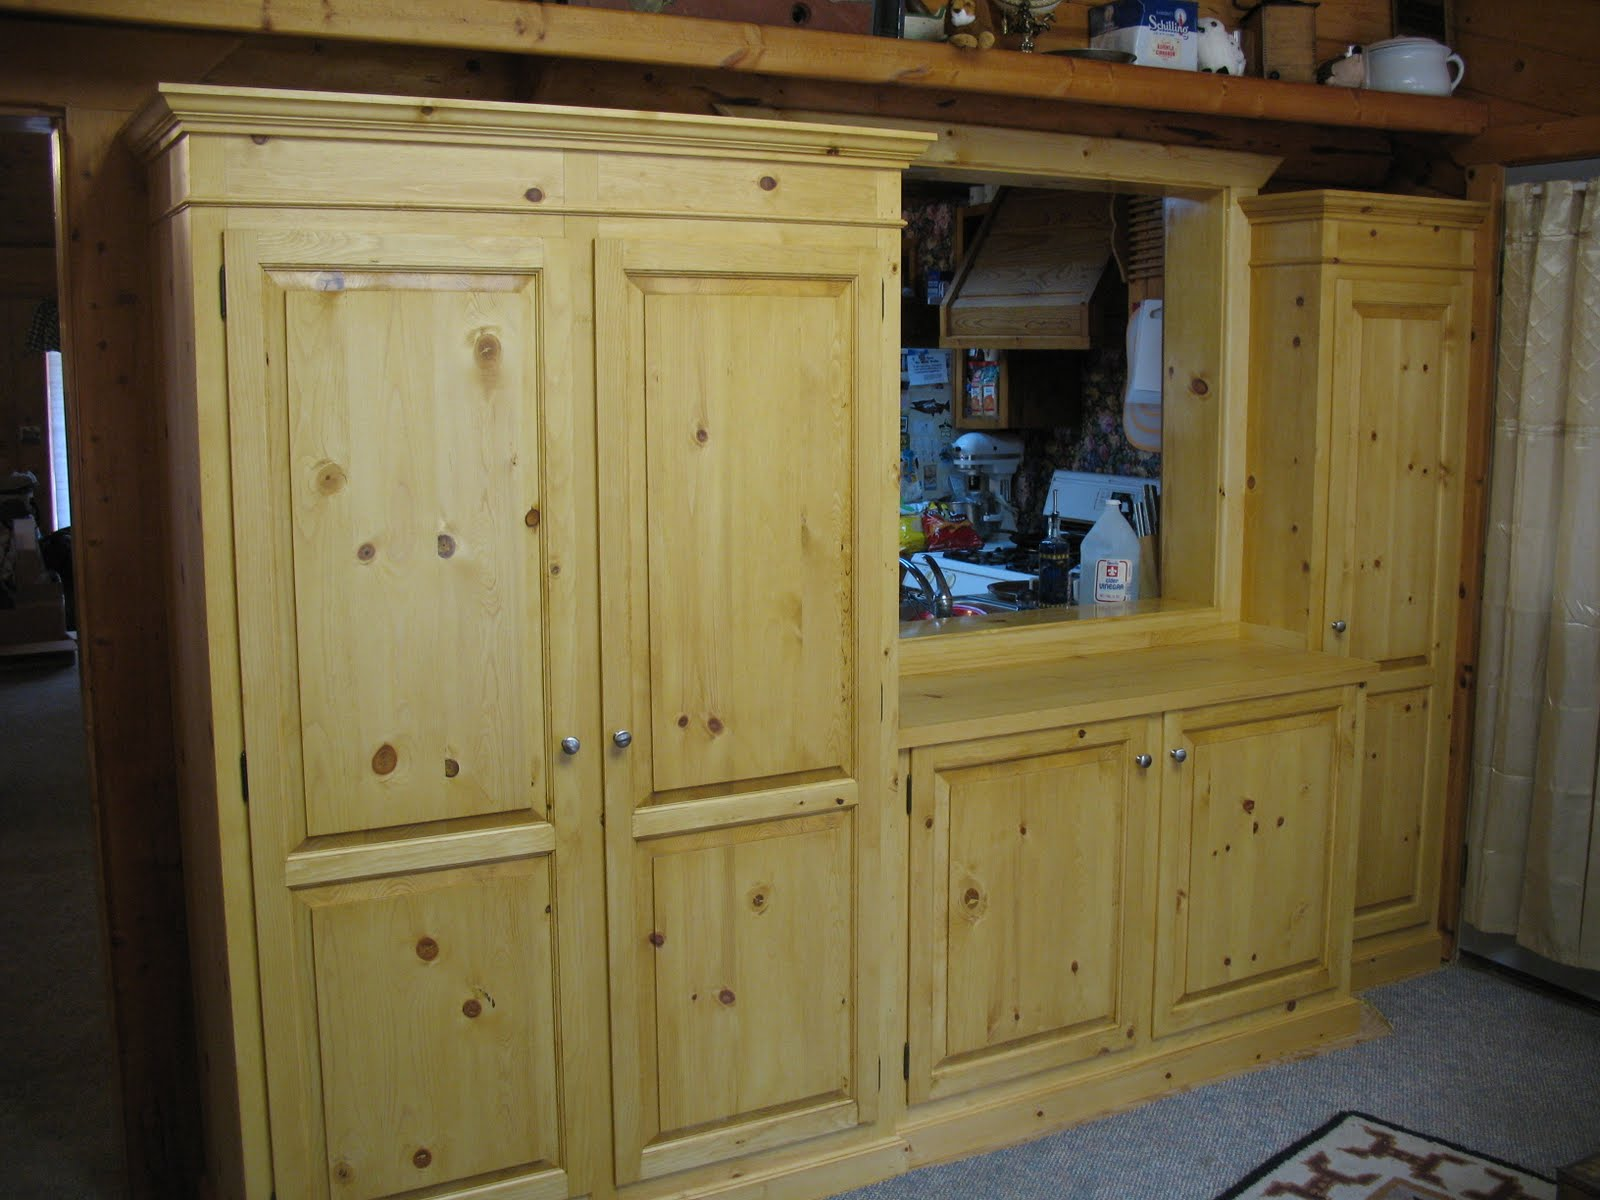 Depressioneradesigns pine pantry storage cabinets for Kitchen cabinets storage